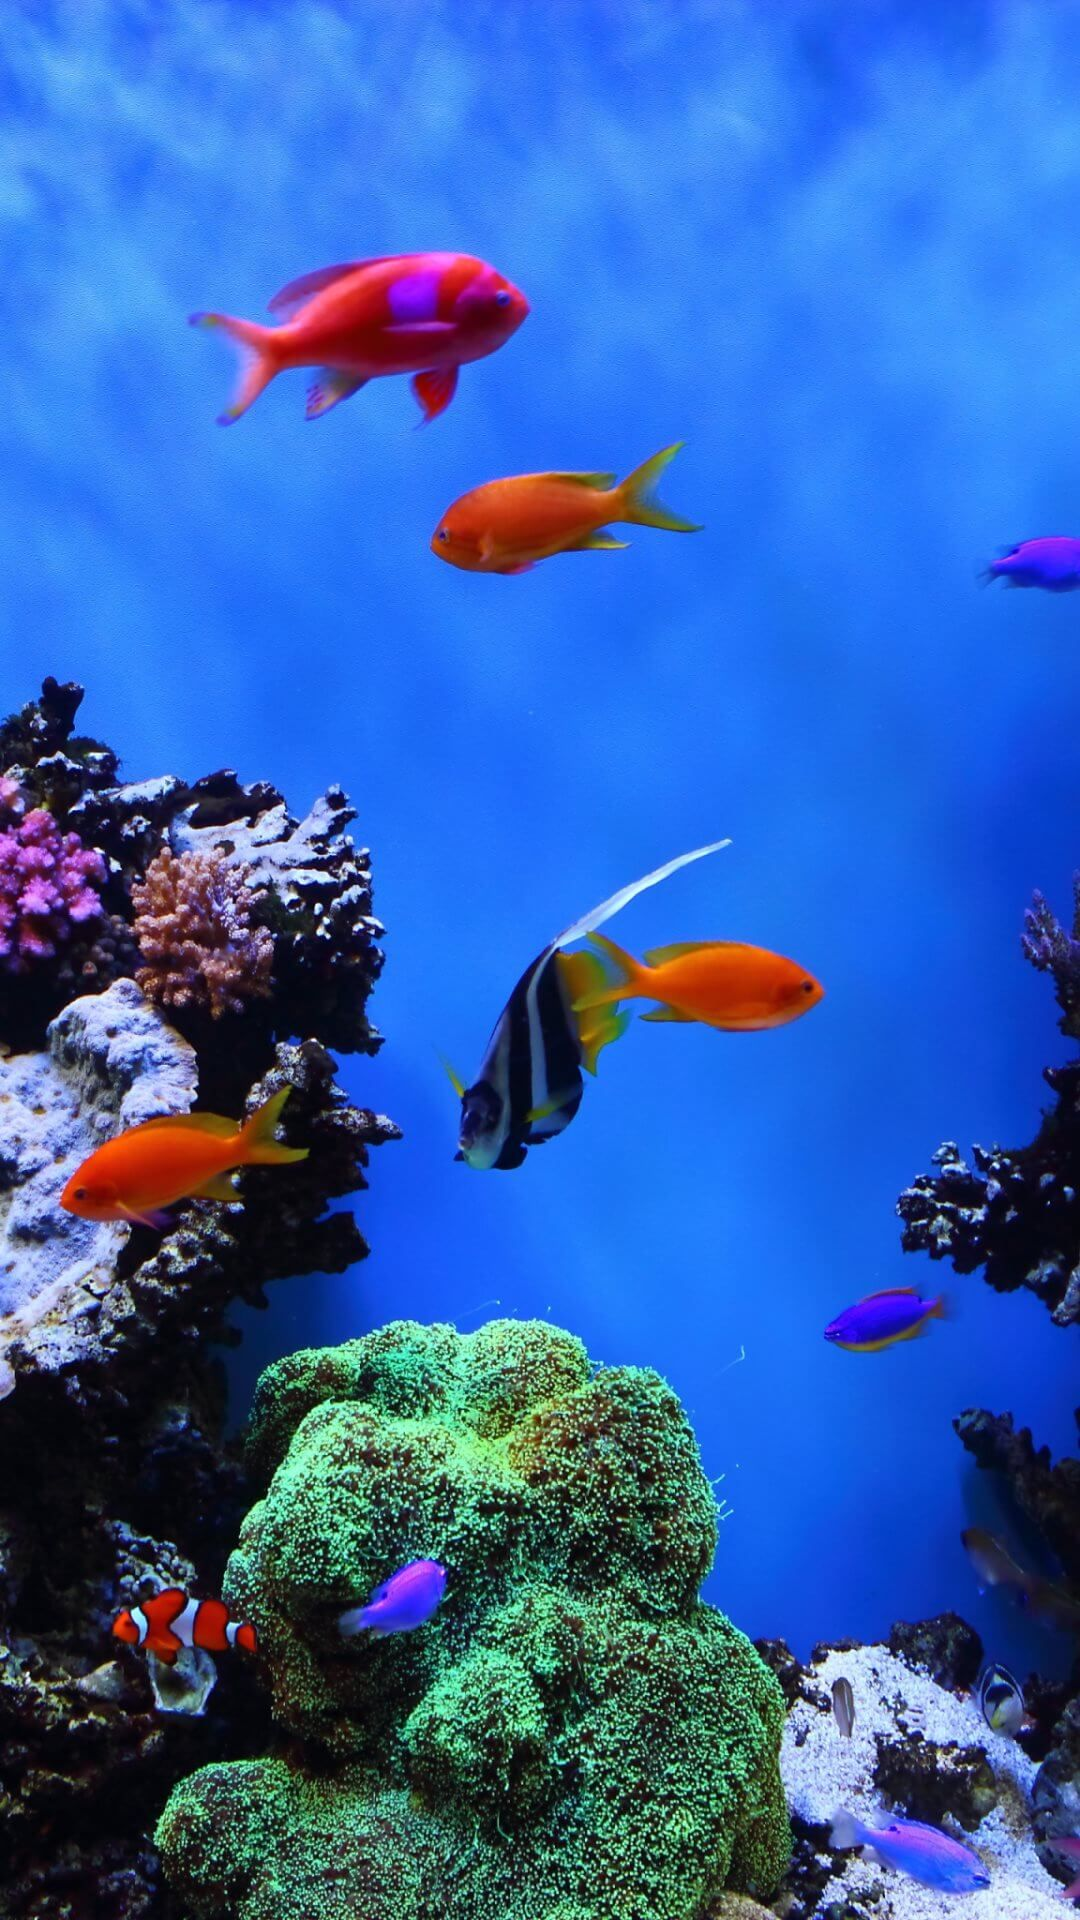 Animal wallpaper aquarium 5, iPhone Wallpaper, iphone 4